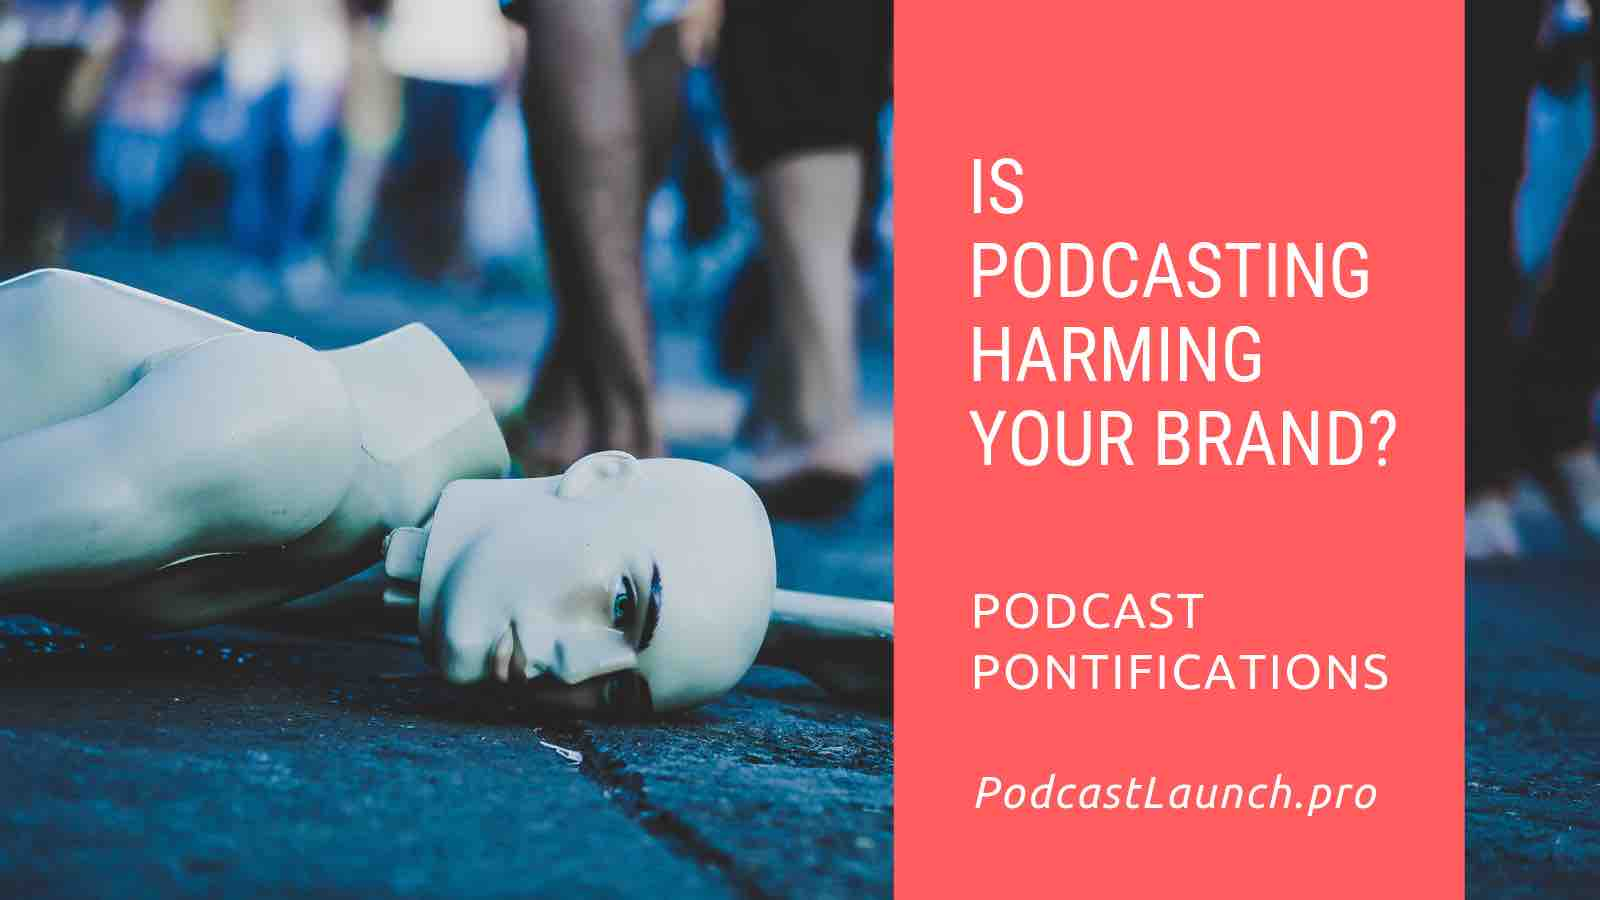 Is Podcasting Harming Your Brand?